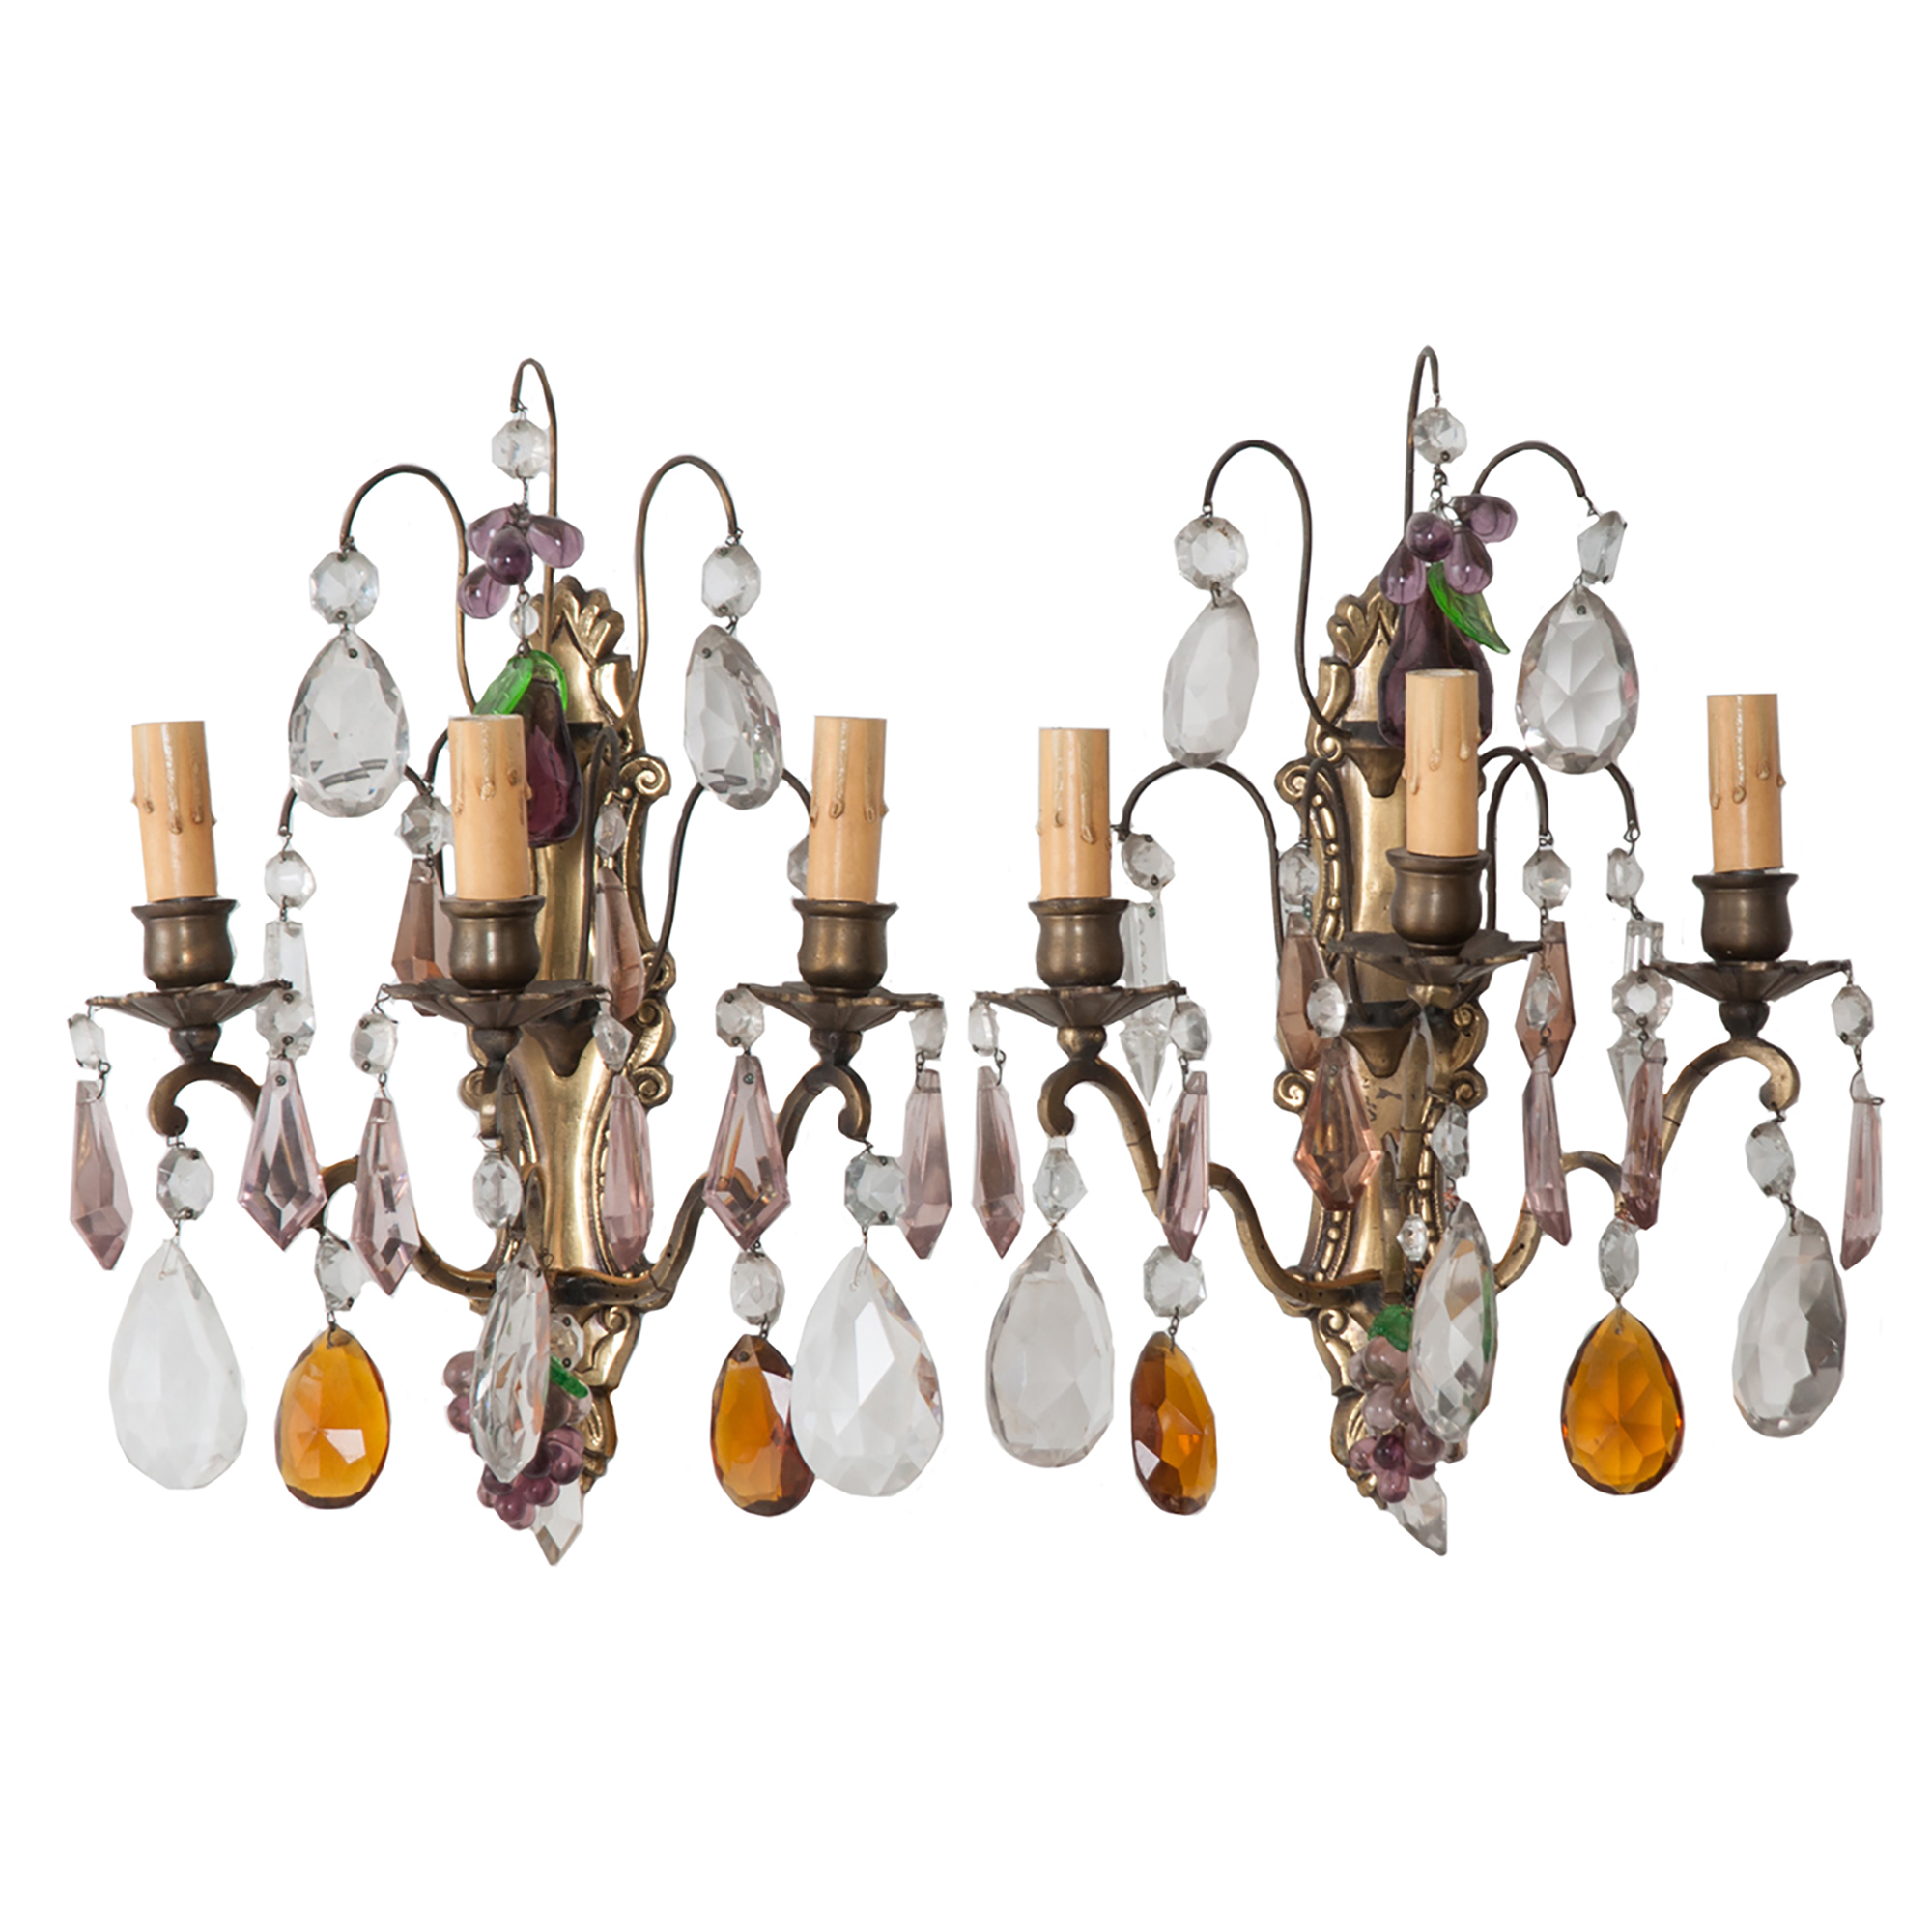 Image of: Pair Of Spanish 19th Century Brass And Crystal Wall Sconces Fireside Antiques